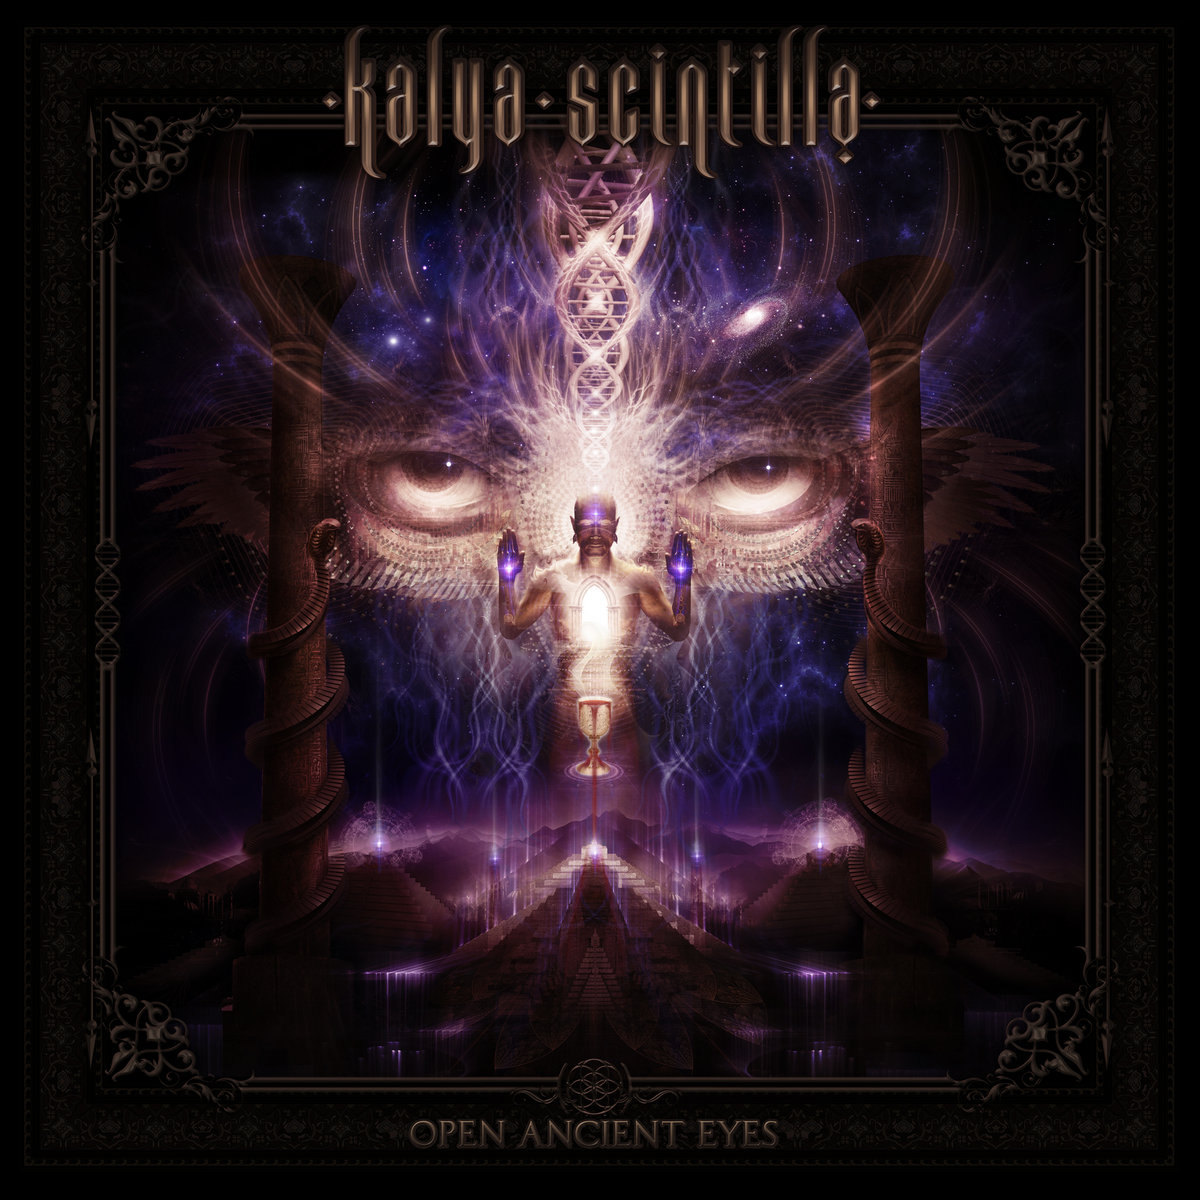 Kalya Scintilla - Yatram @ 'Open Ancient Eyes' album (432hz, electronic)